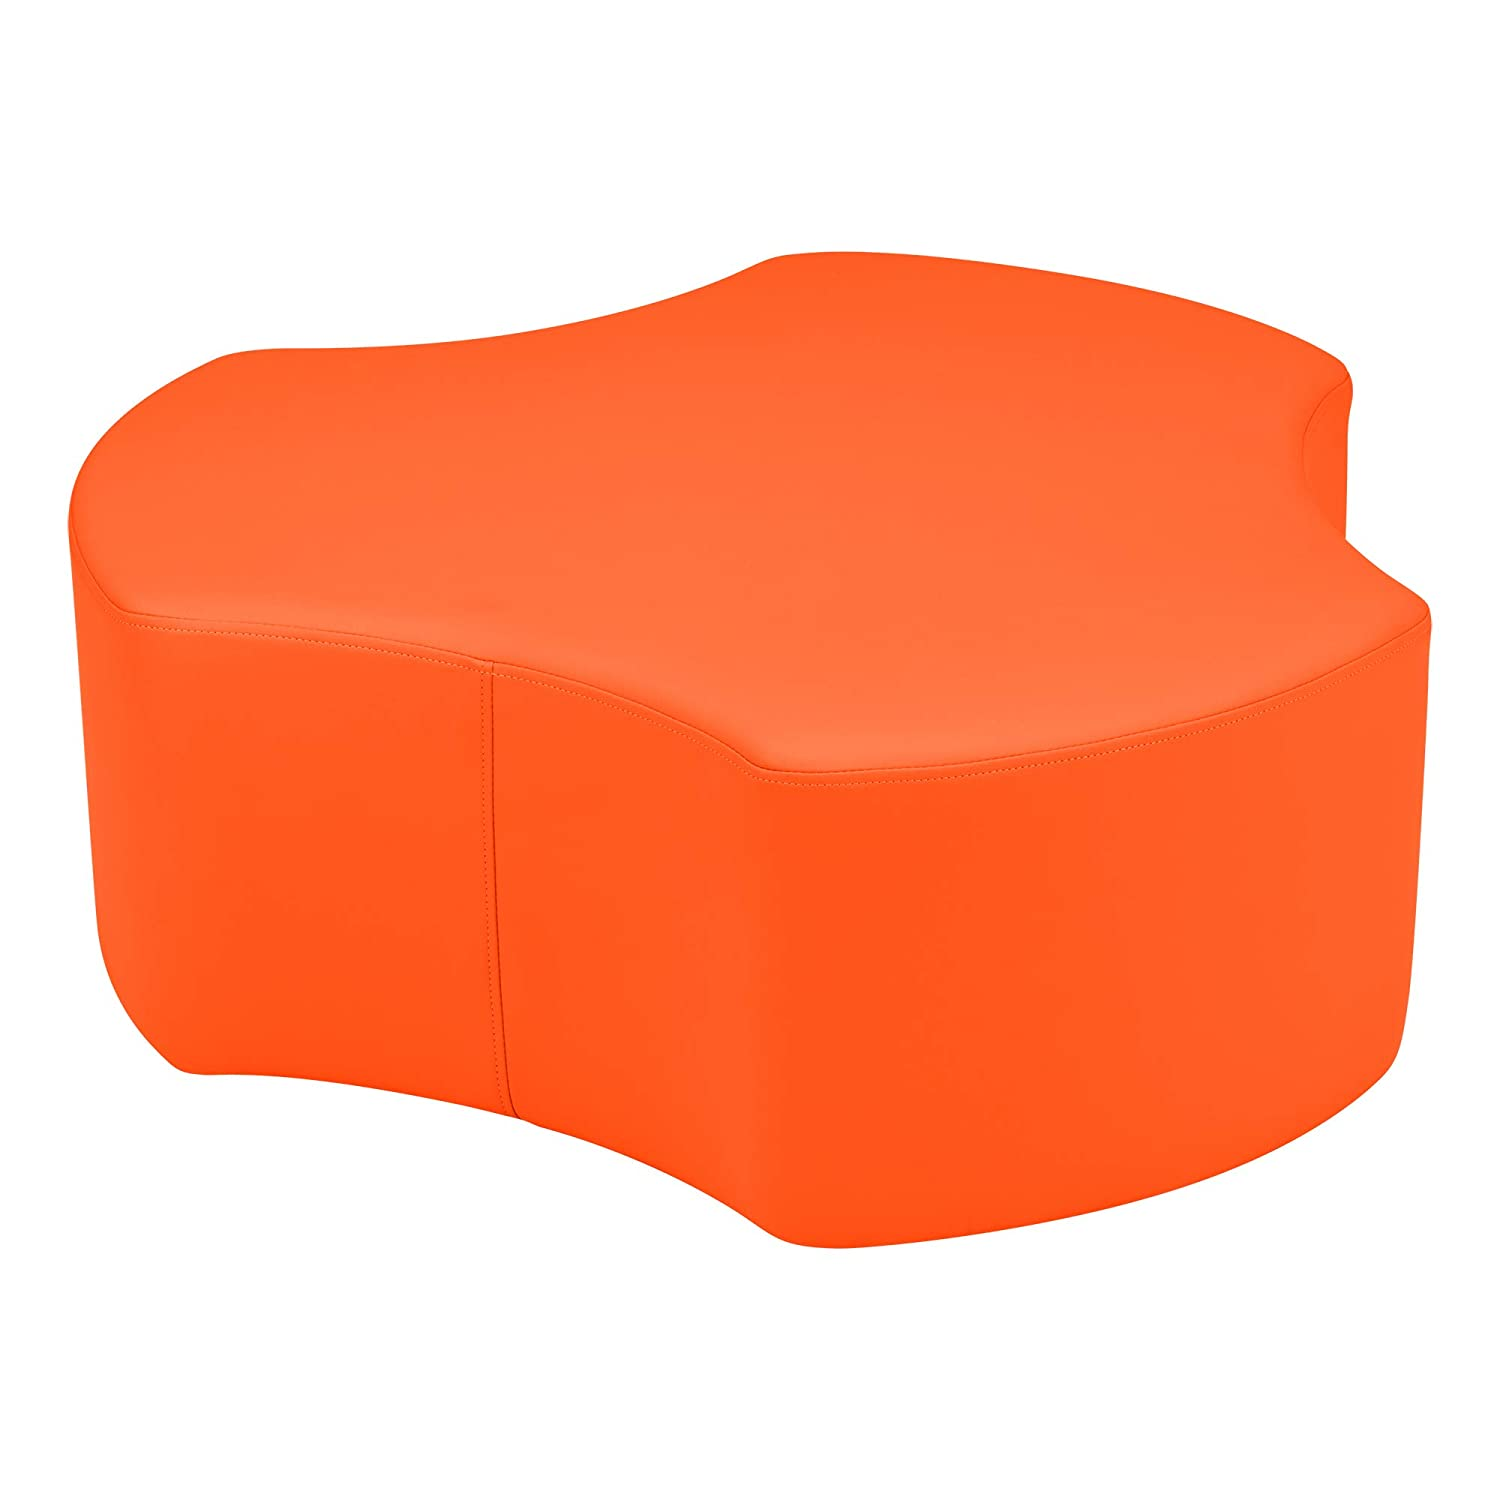 SPG-1015BL-A 18 H Sprogs Vinyl Soft Seating Gear Stool Blue